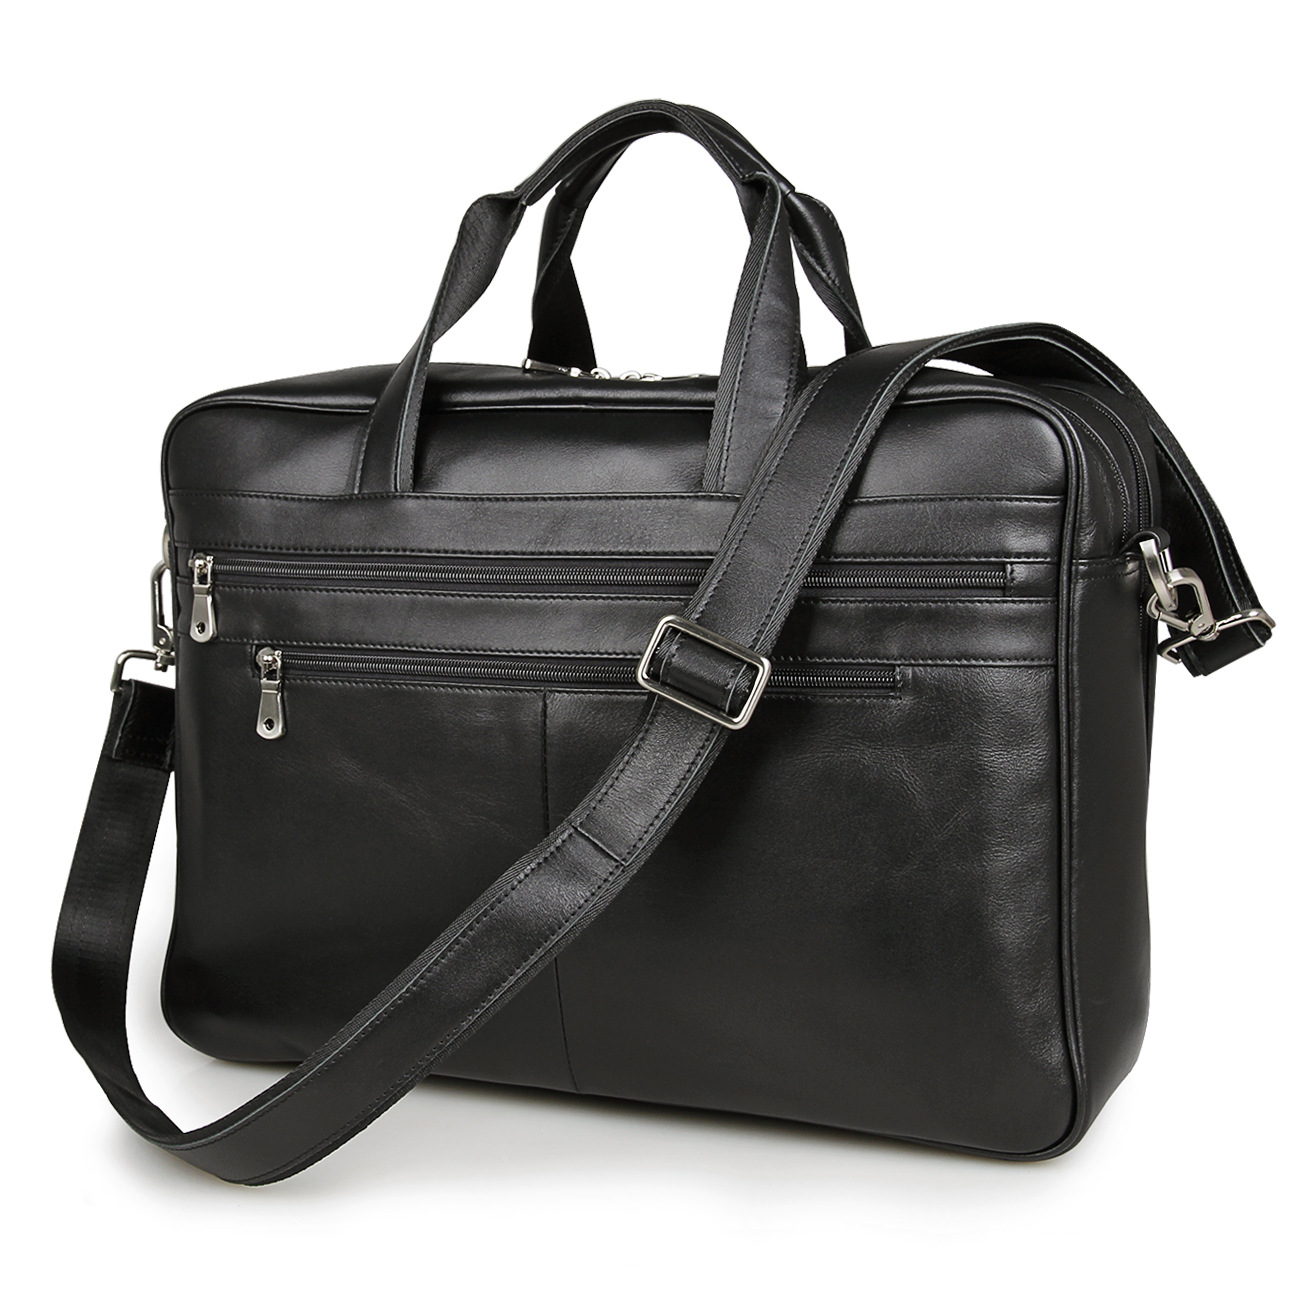 купить Men Fashion Briefcase Business Shoulder Genuine Leather Bag Men Messenger Bag Cool Computer Laptop Handbag Bag Men's Travel Bags по цене 8491.53 рублей